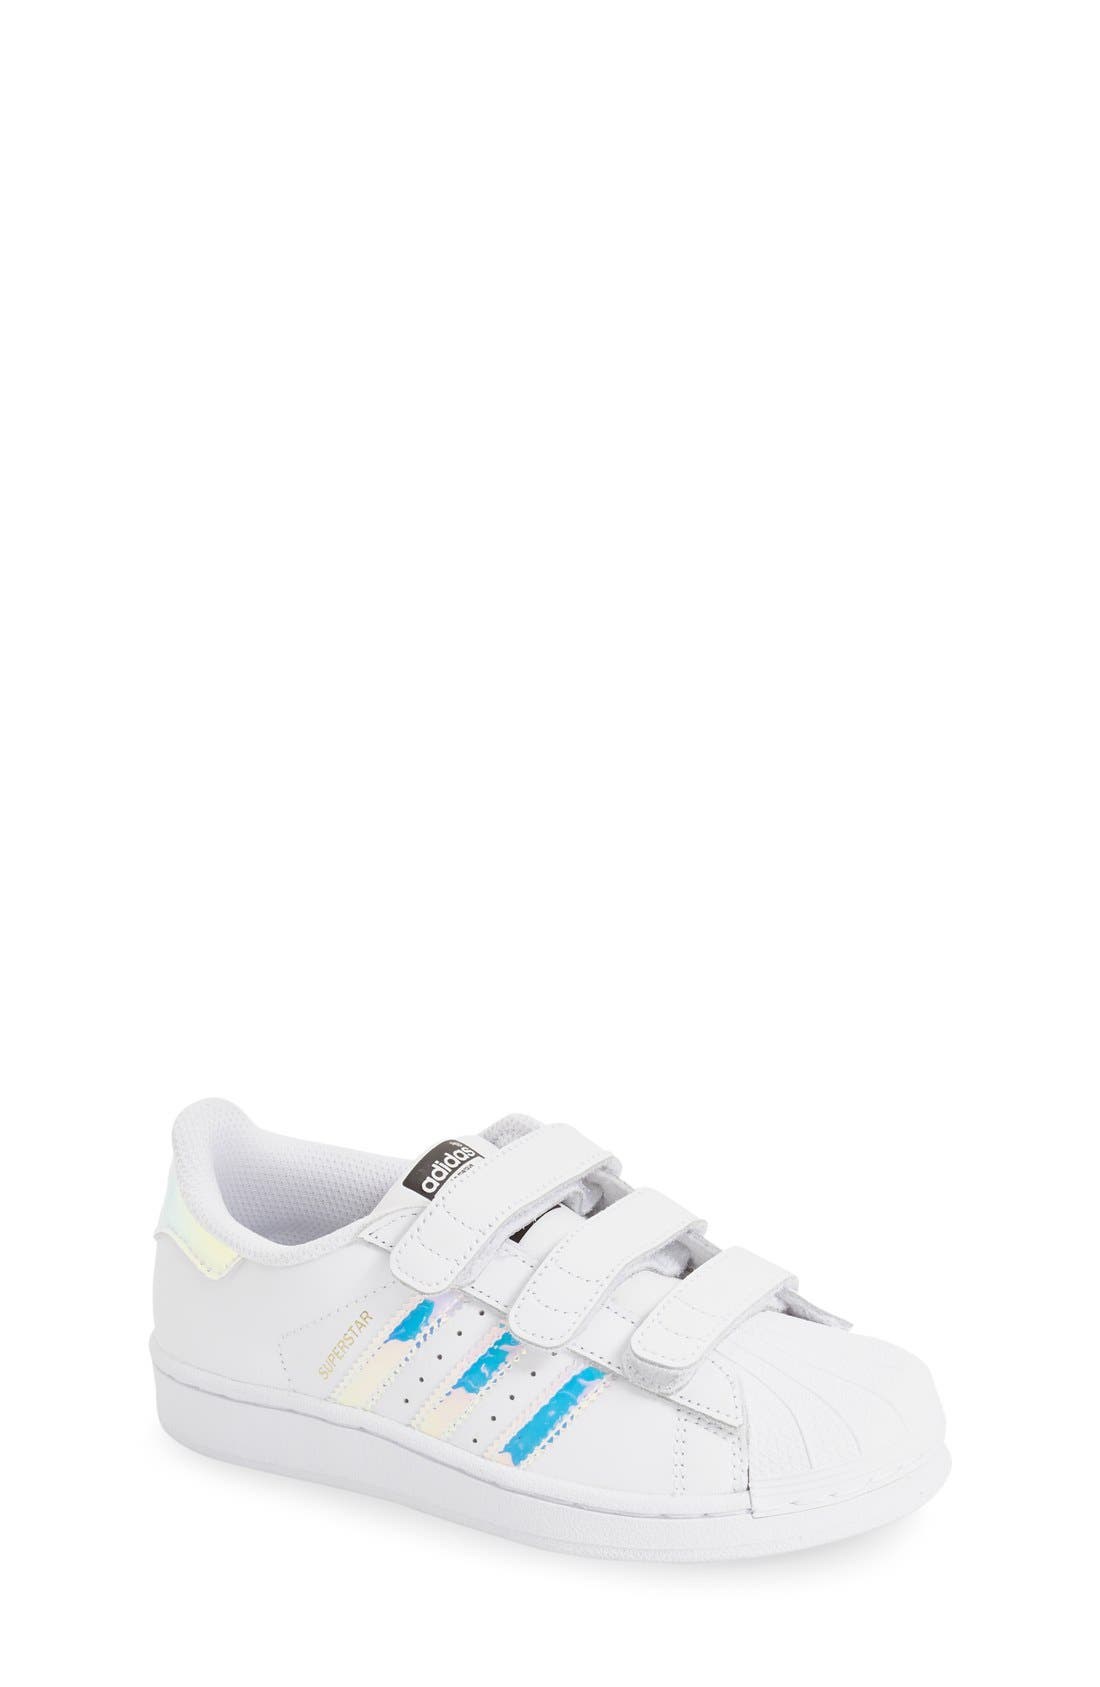 Superstar - Iridescent Sneaker,                         Main,                         color, SILVER METALLIC/ WHITE